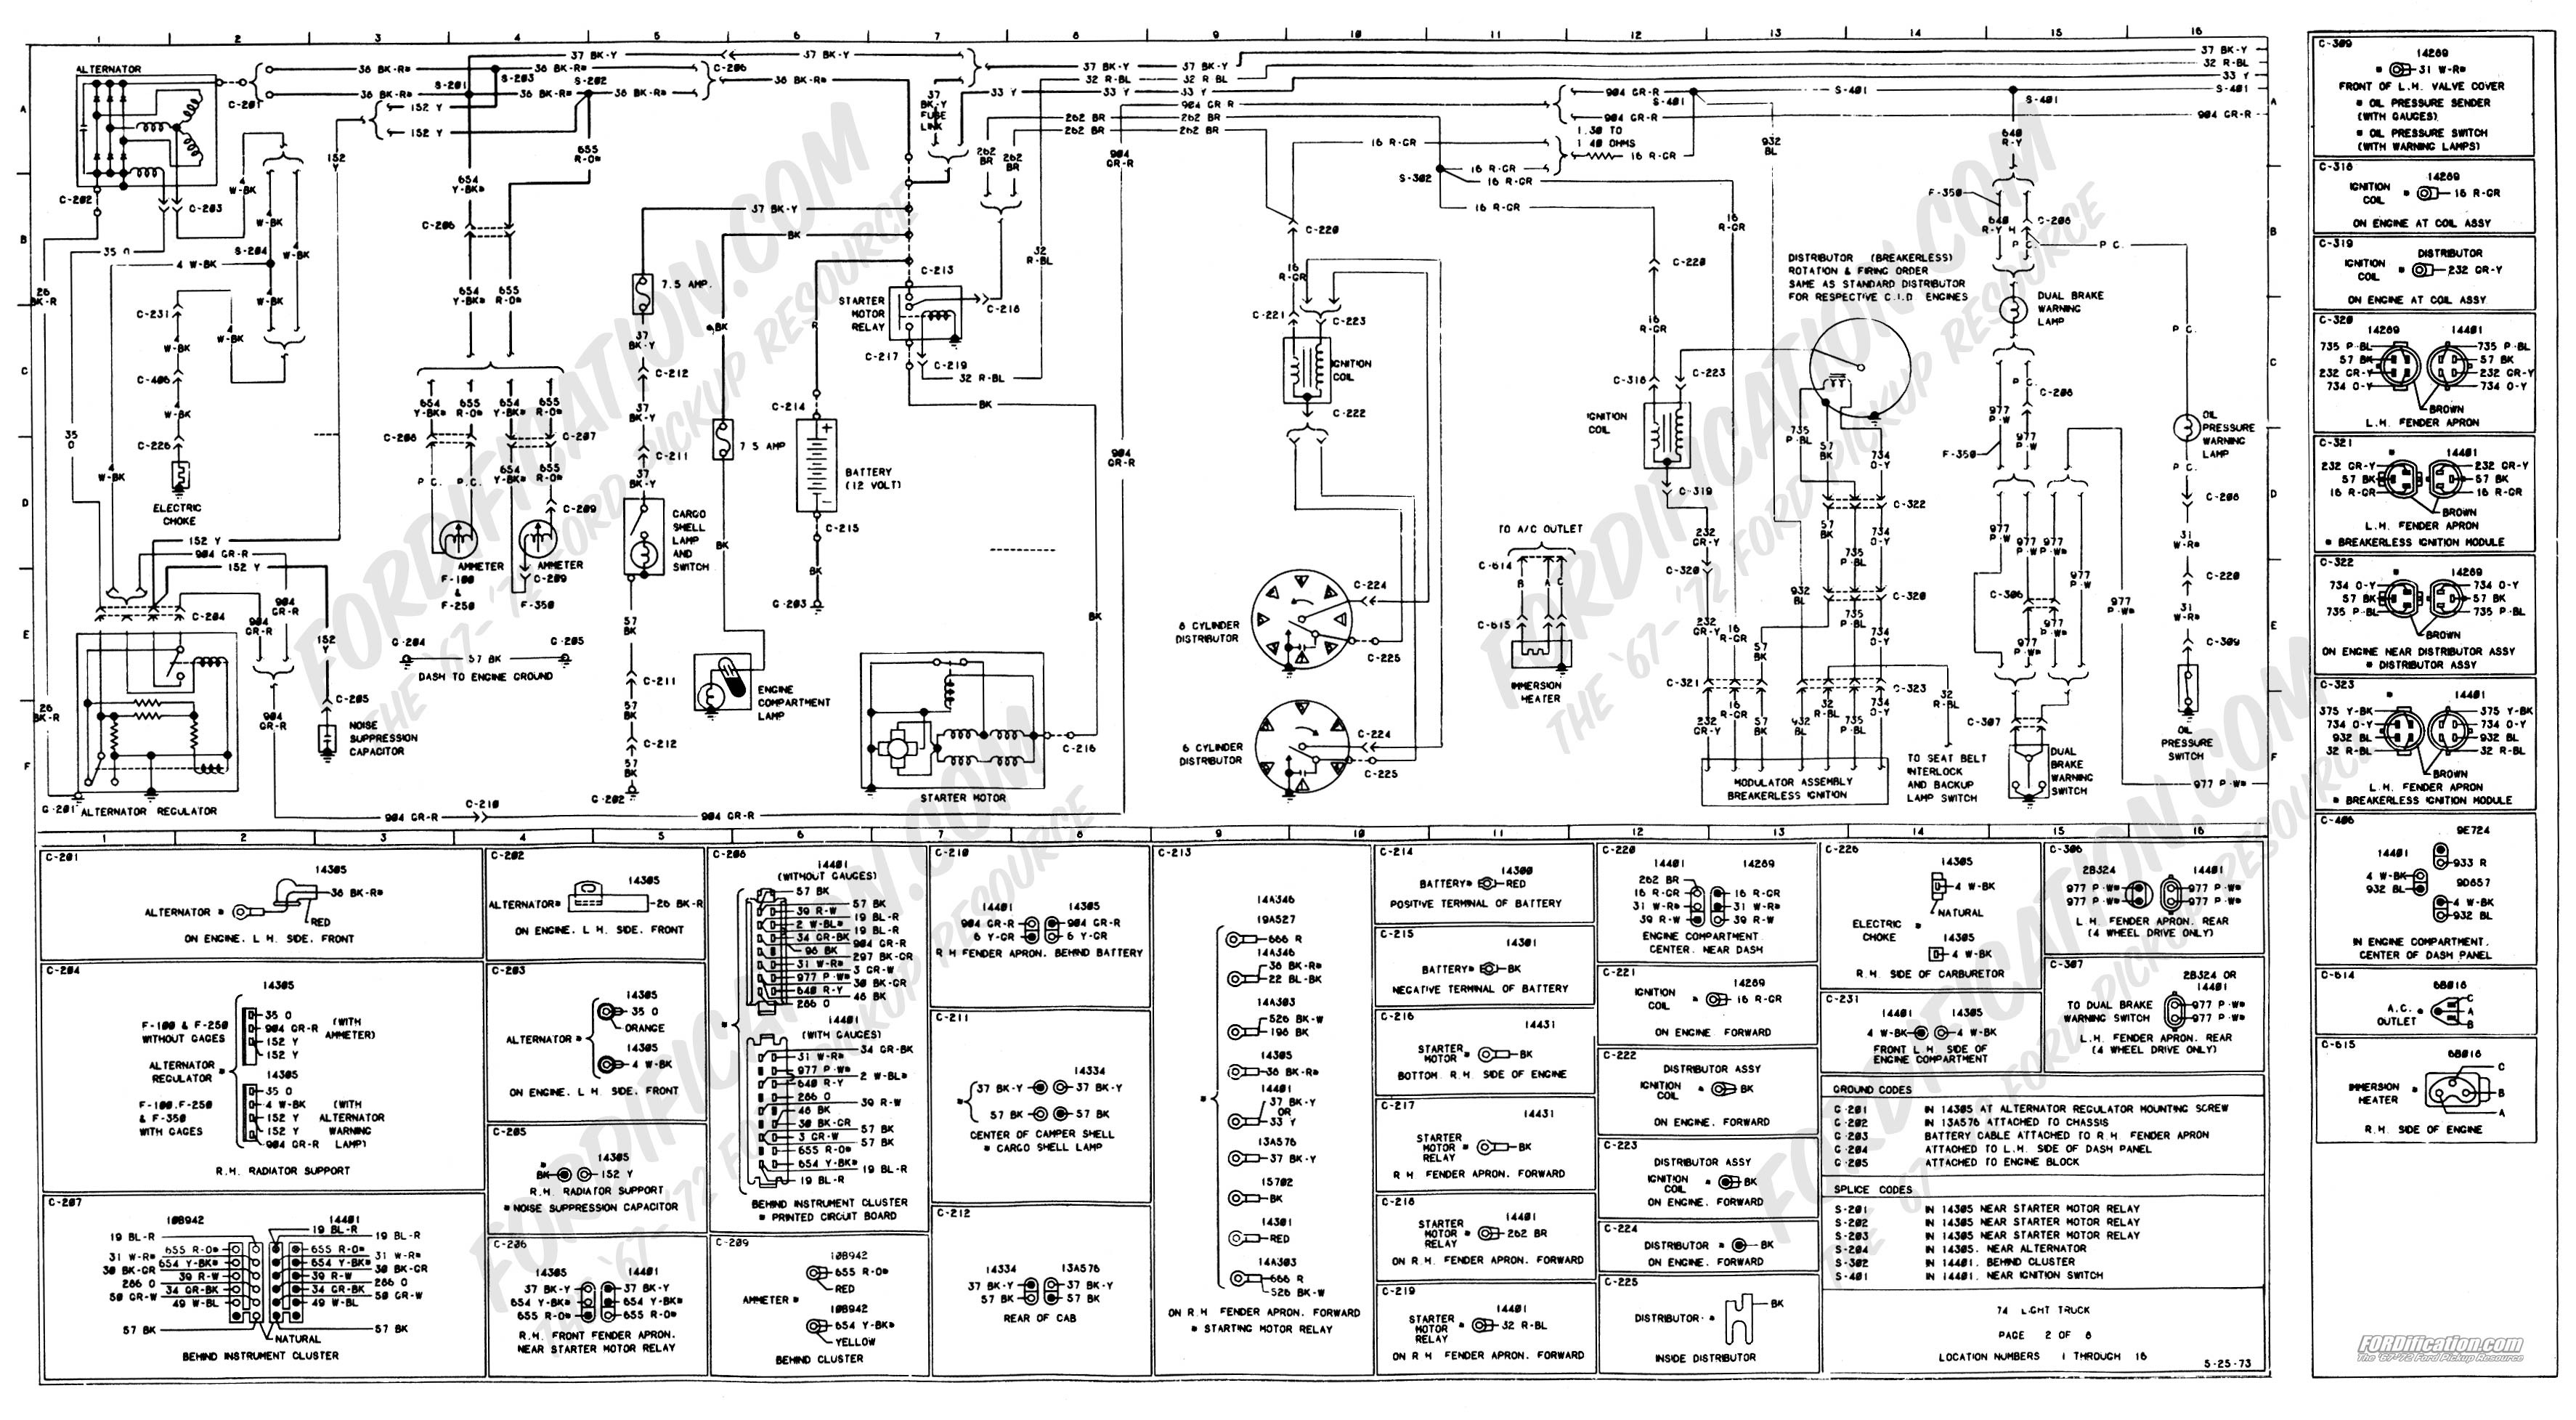 Wiring Diagram For 1994 Silhouette Home 14x70